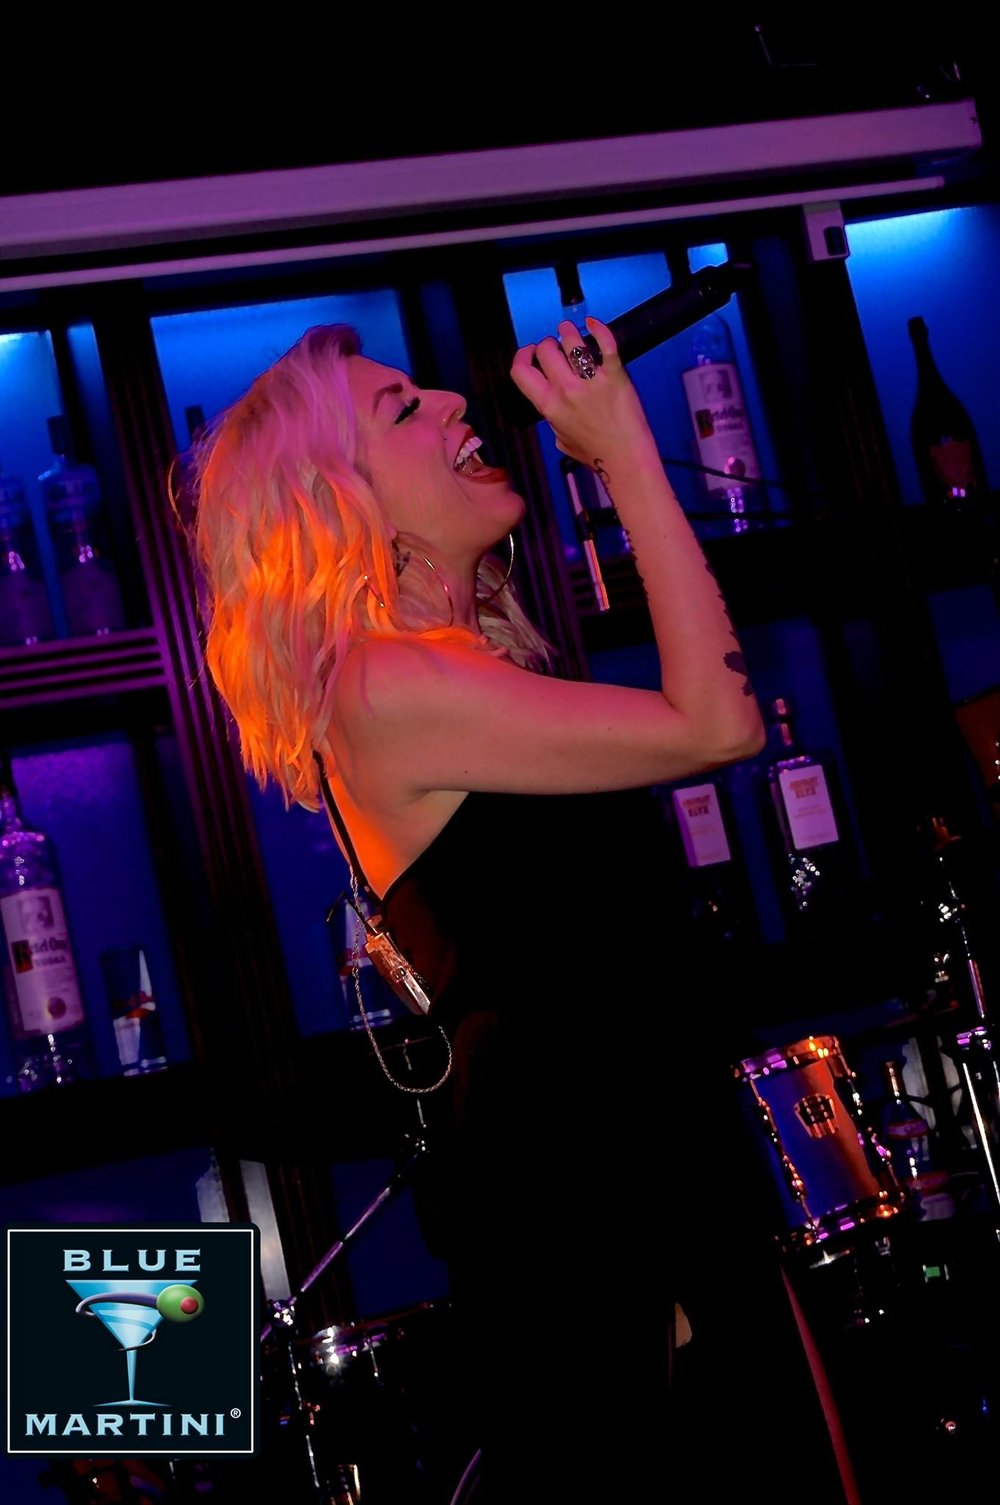 NEON_band_live_music_best_band_phoenix_weddings_corporate_events_nightclubs__christine_rizzo.jpg